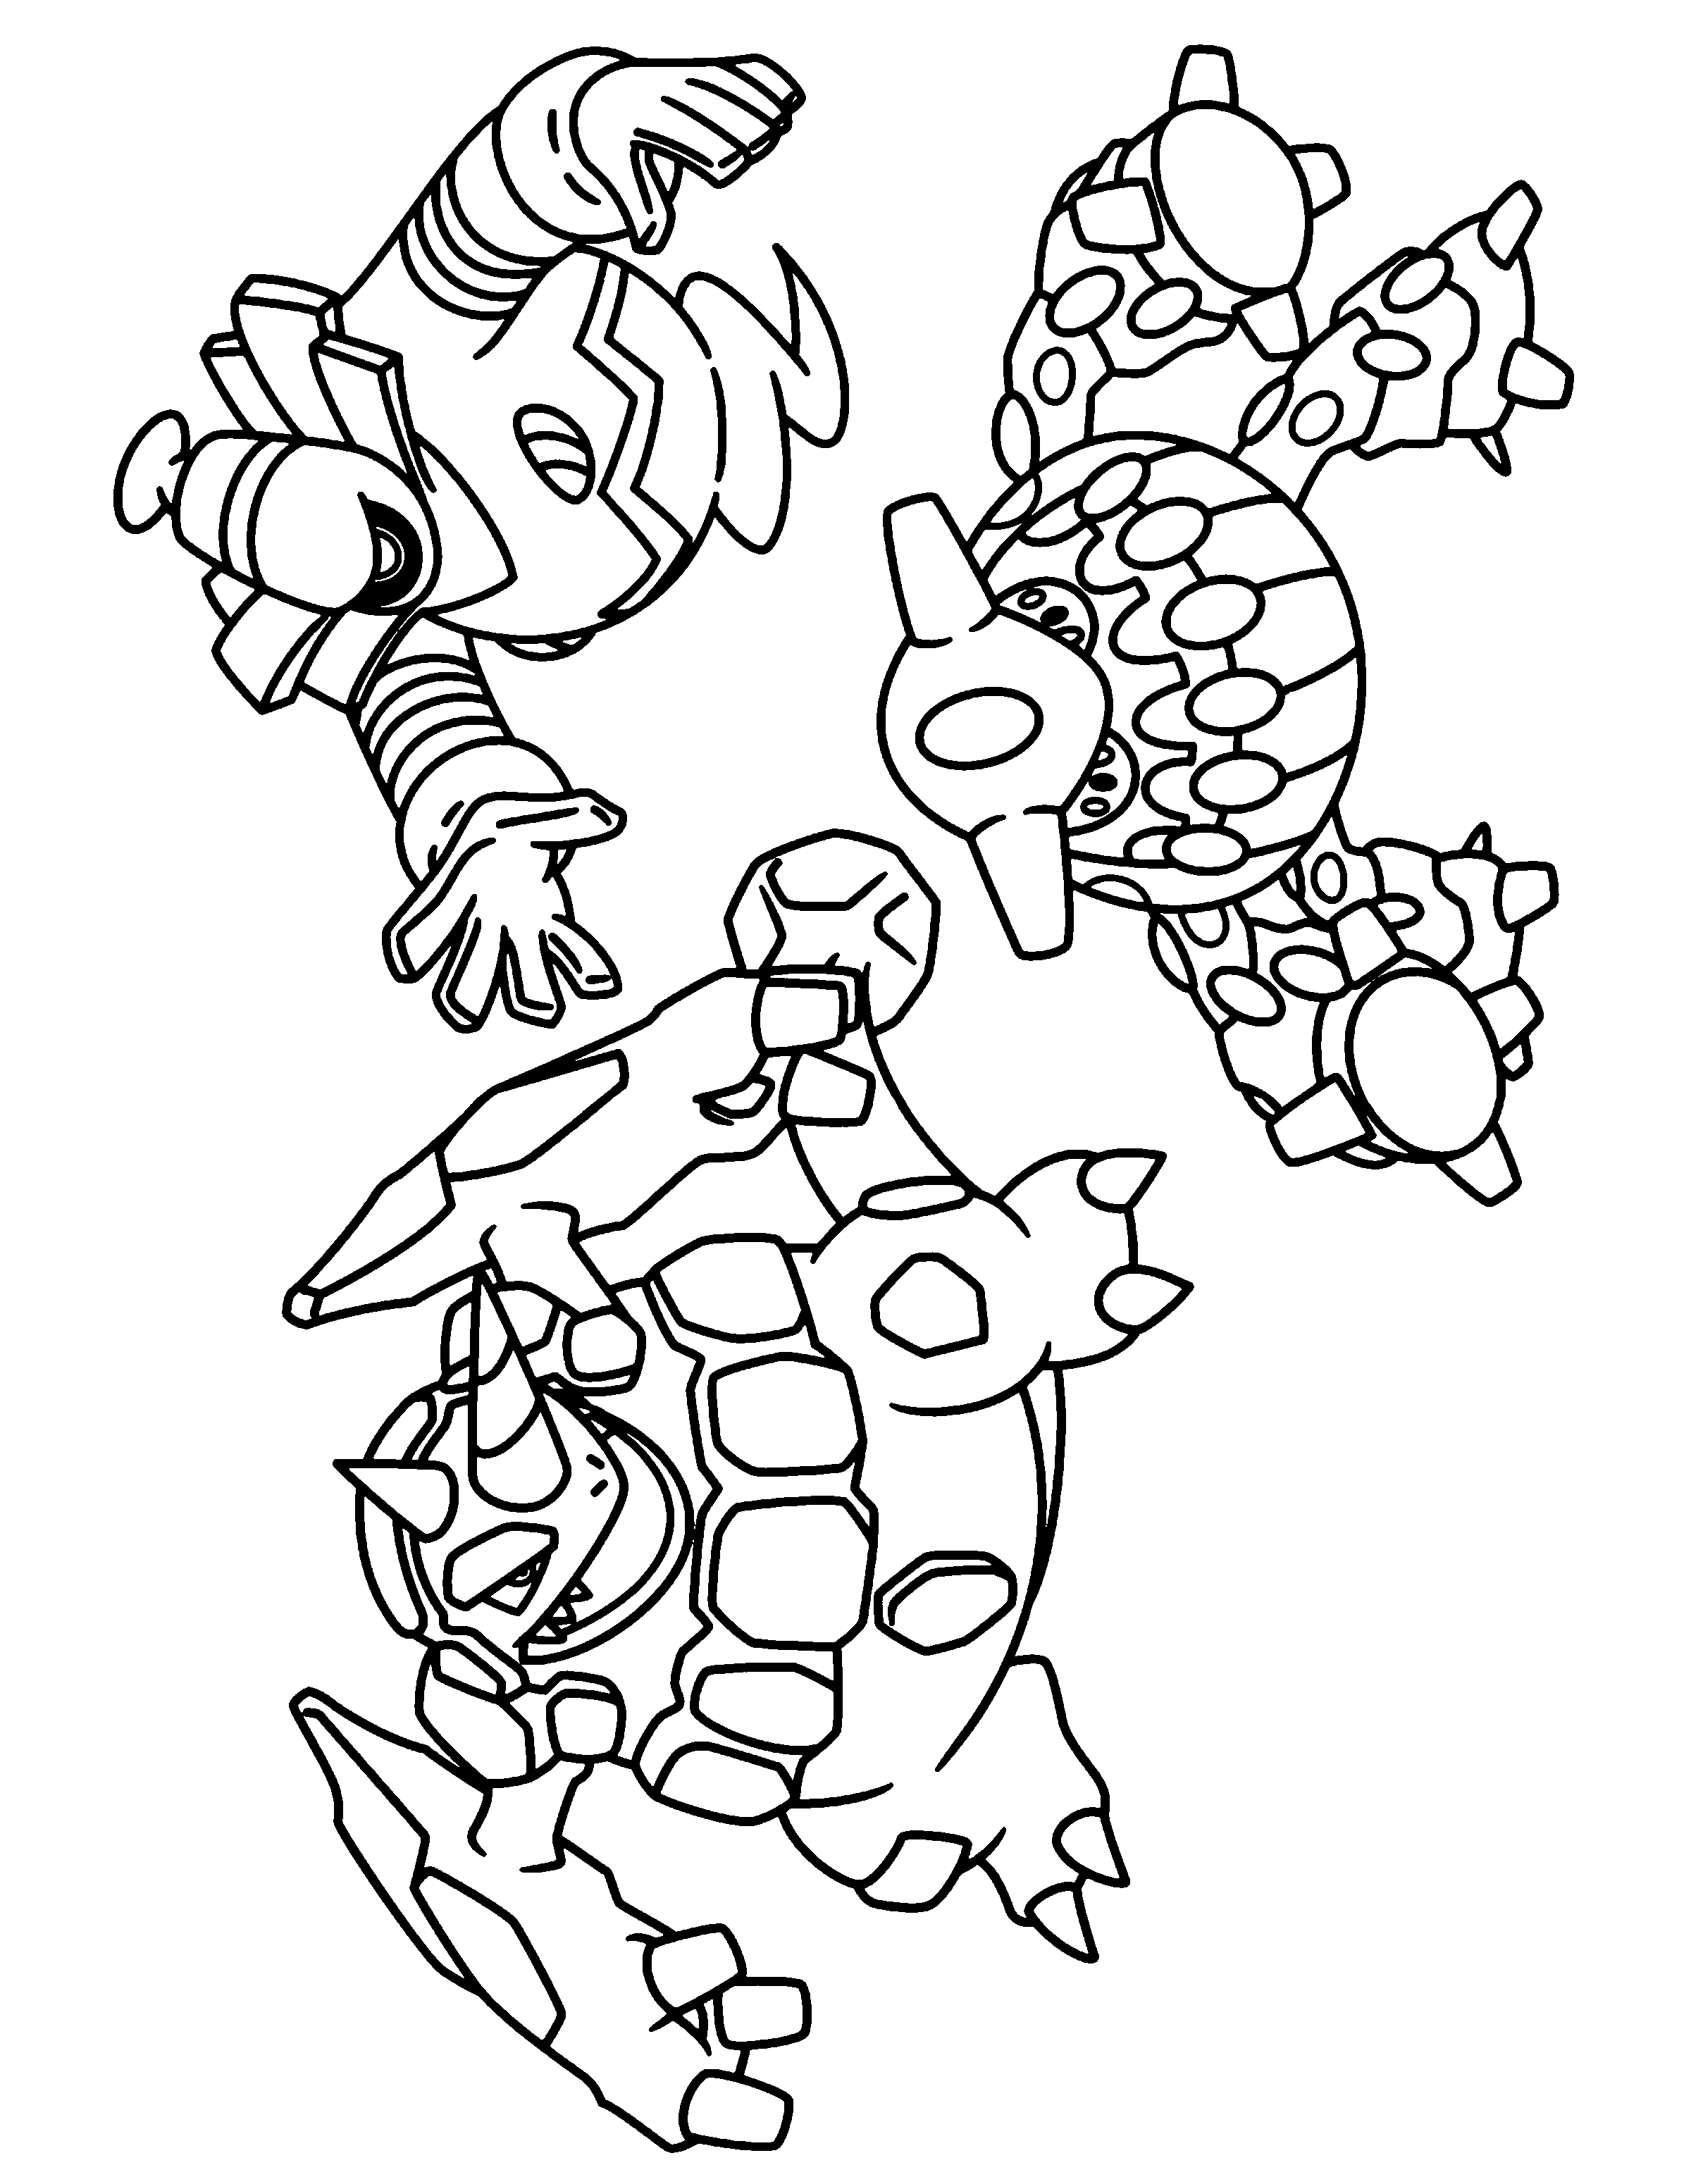 free online coloring pages pokemon black white pokemon black and white coloring pages to print coloring coloring black online white pages free pokemon